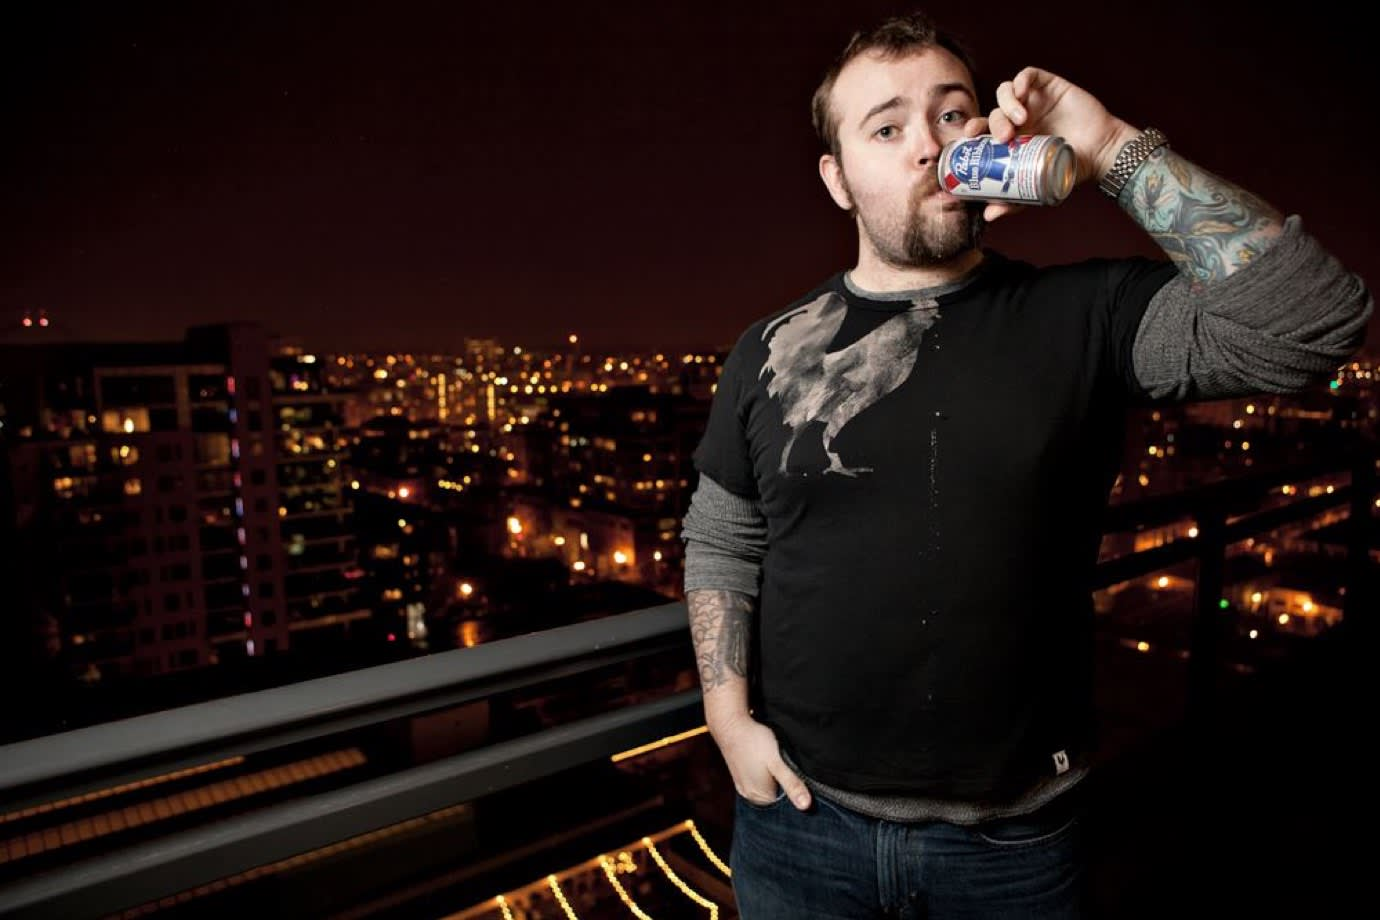 Jason Lengstorf on a balcony at night drinking beer.